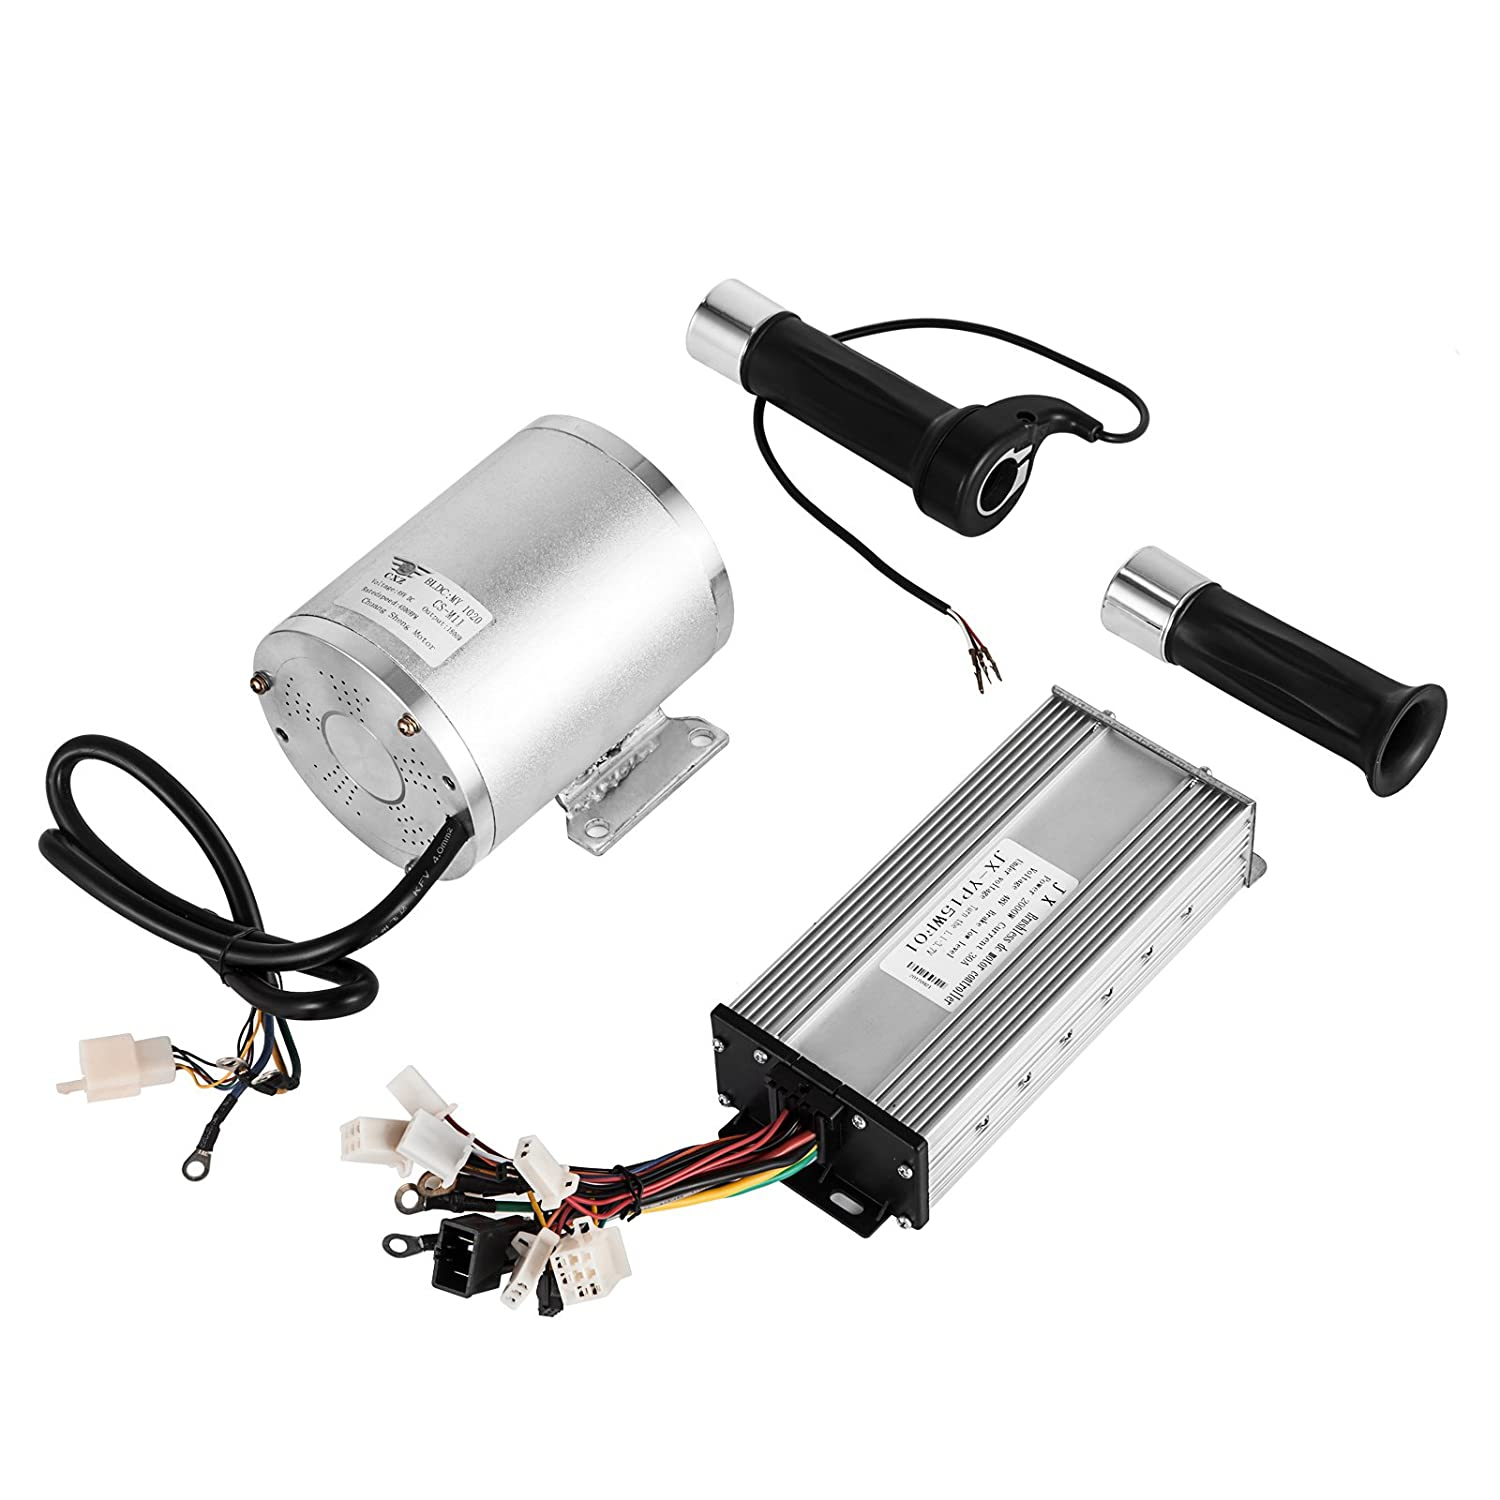 Mophorn 1800w Electric Brushless Dc Motor Kit 48v High Razor Scooter Battery Wiring Diagram Speed With 32a Controller And Throttle Grip For Go Karts E Bike Motorcycle More